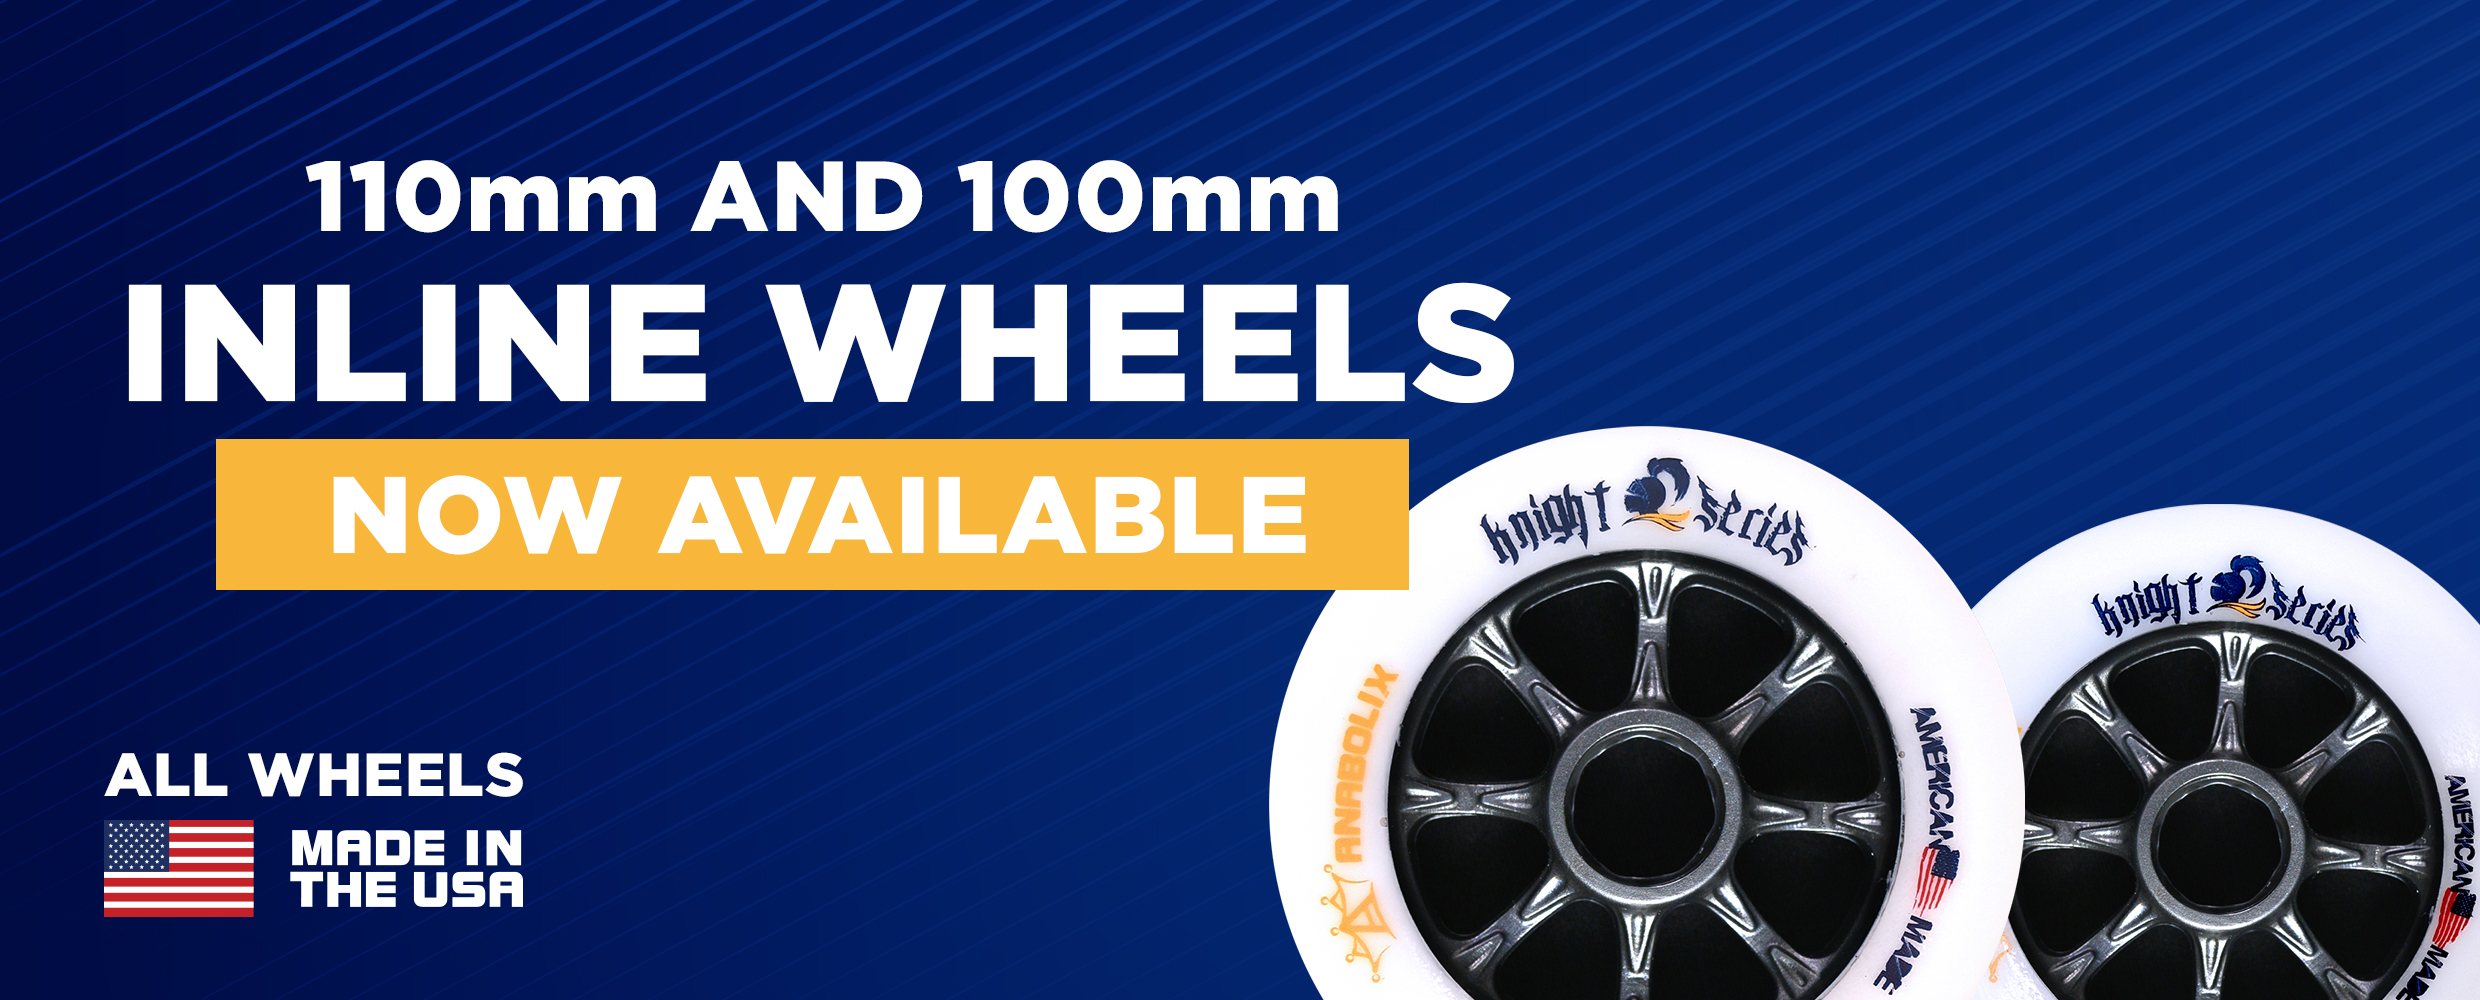 knight series inline wheels now available in 2 sizes 110mm and 100mm